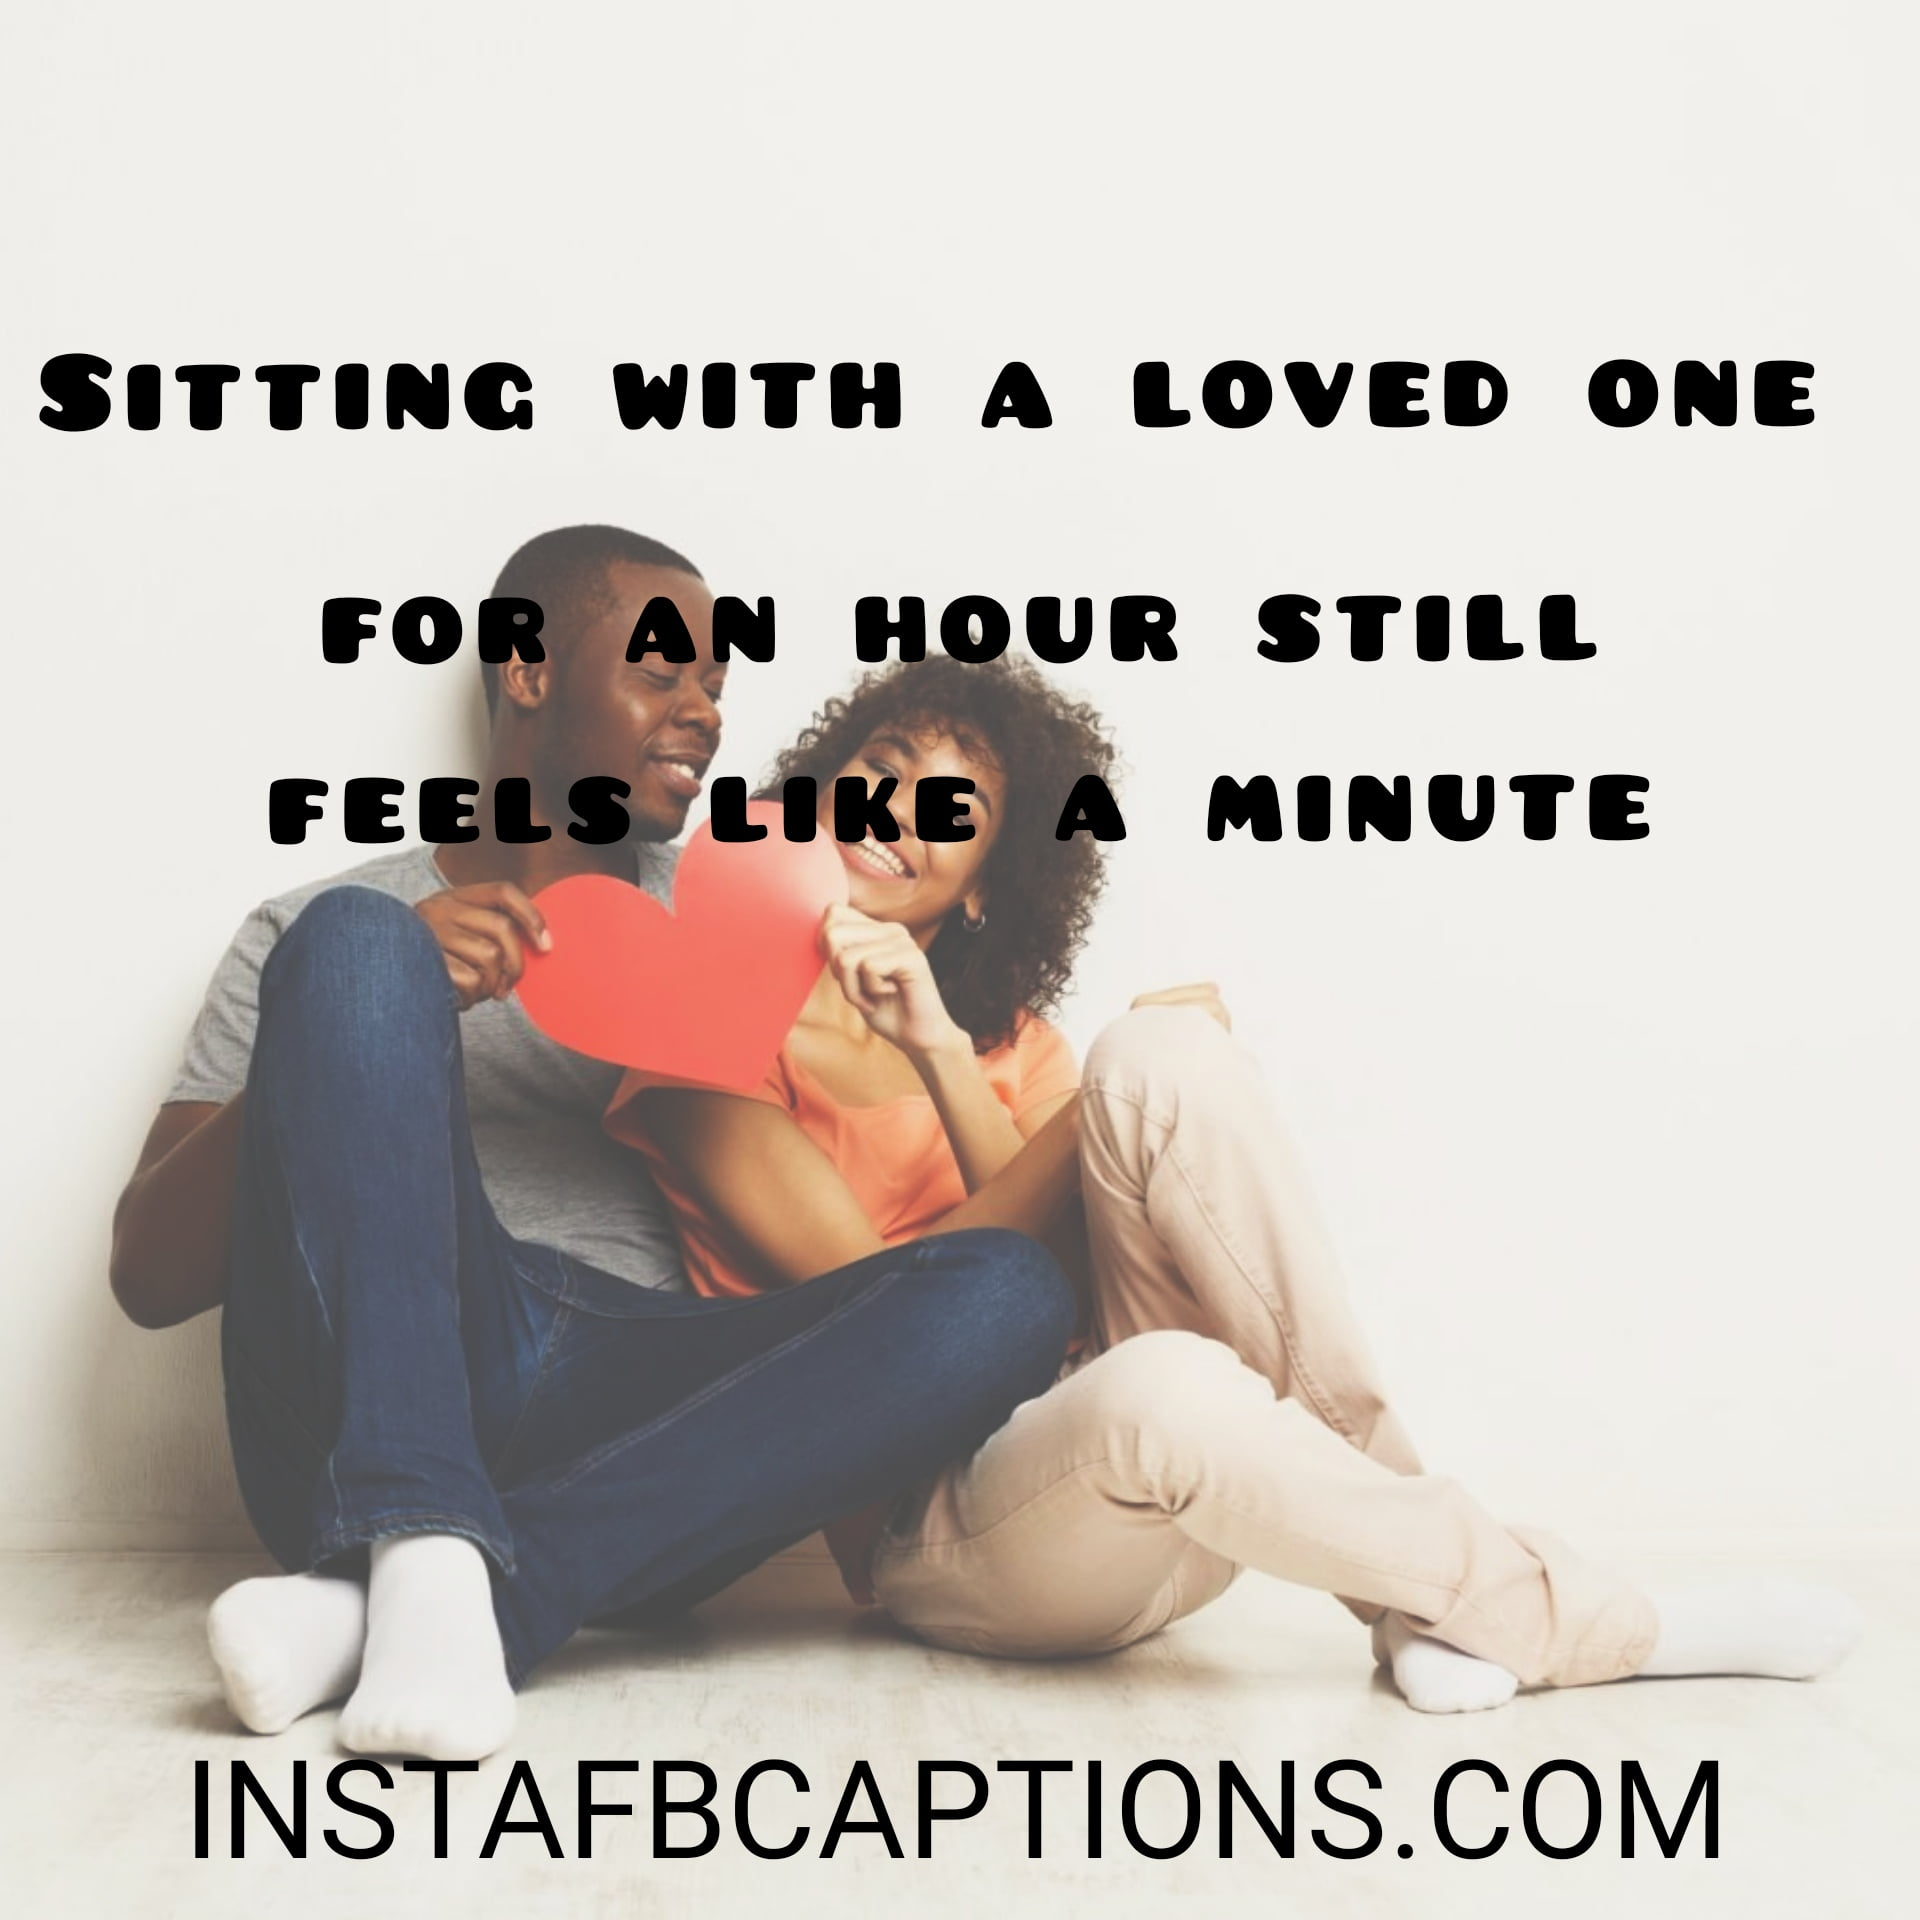 Sitting With Love Captions  - Sitting with love captions - 120+ SITTING POSE Instagram captions 2021